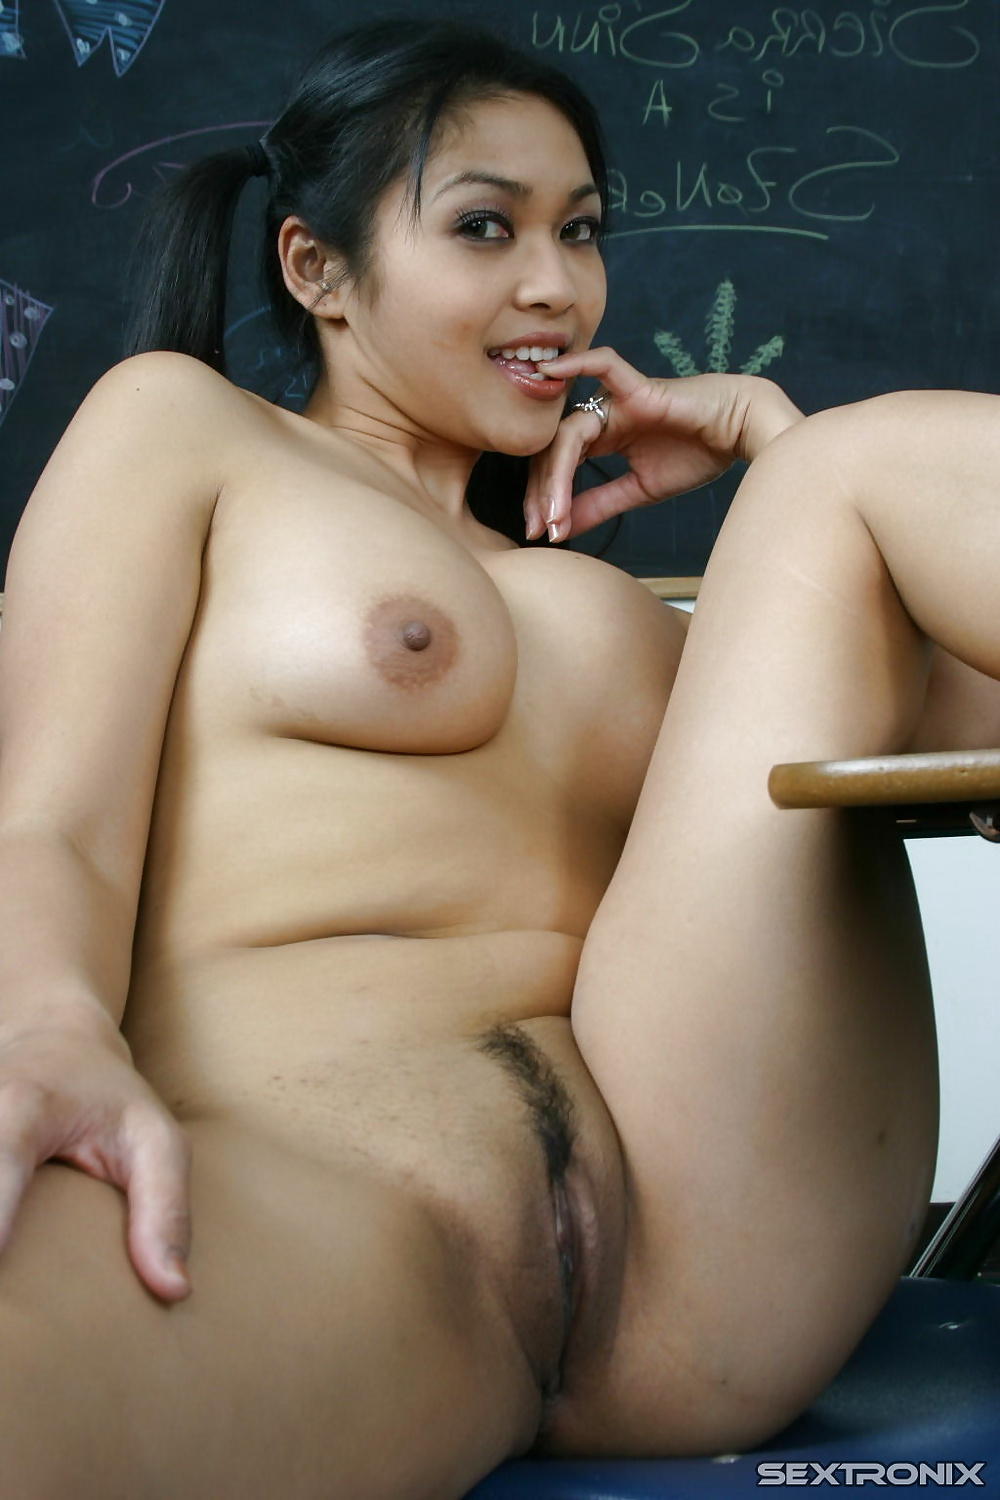 Mexican girl peeing nude